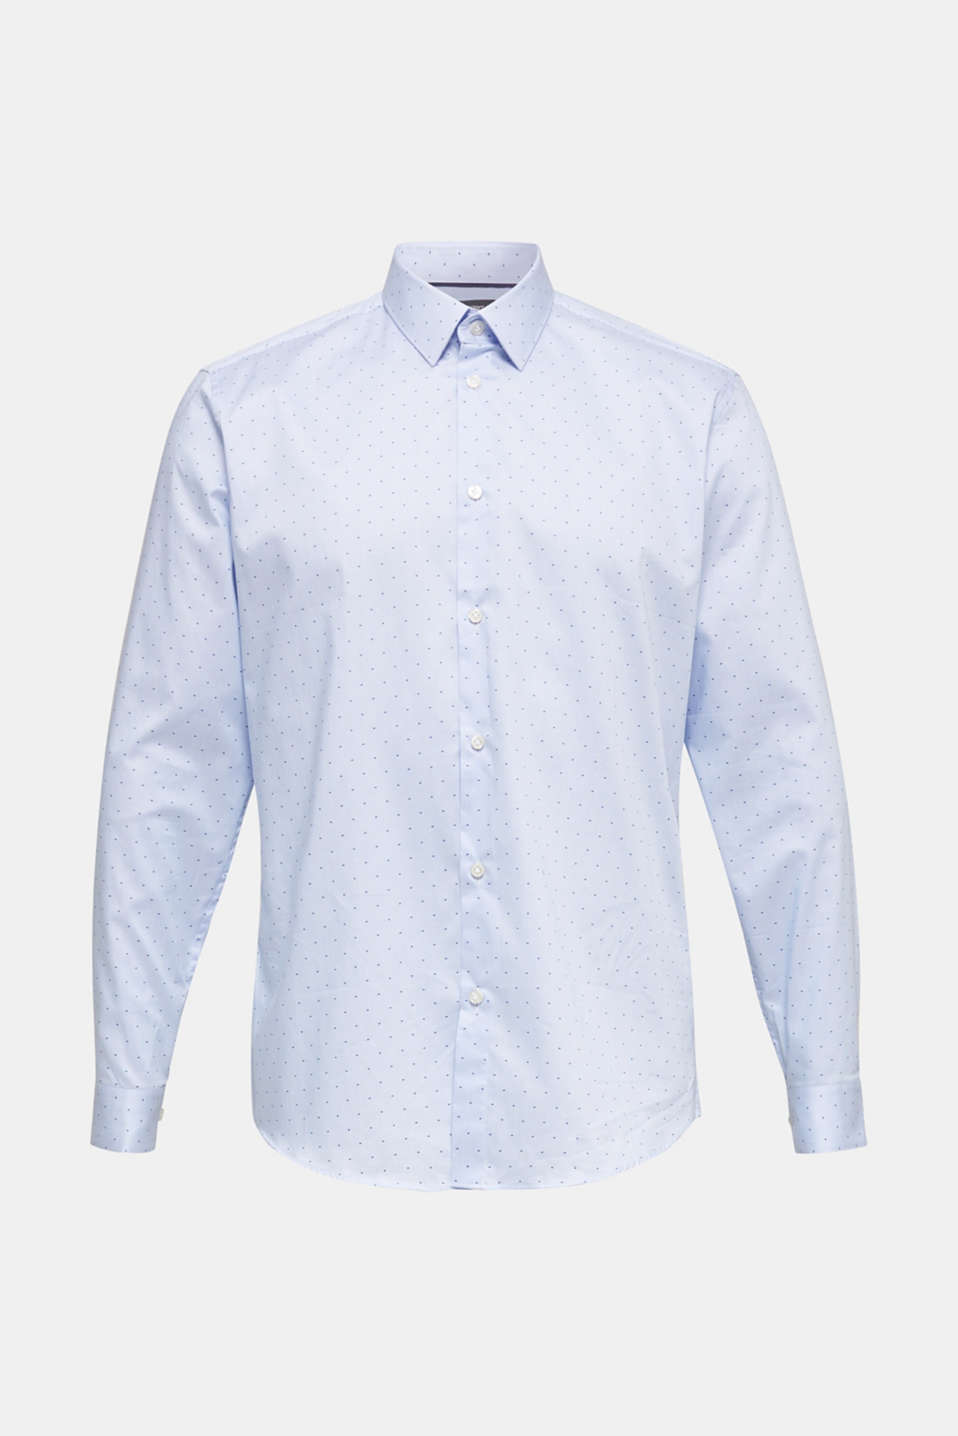 Shirt with a jacquard pattern, 100% cotton, LIGHT BLUE 4, detail image number 5